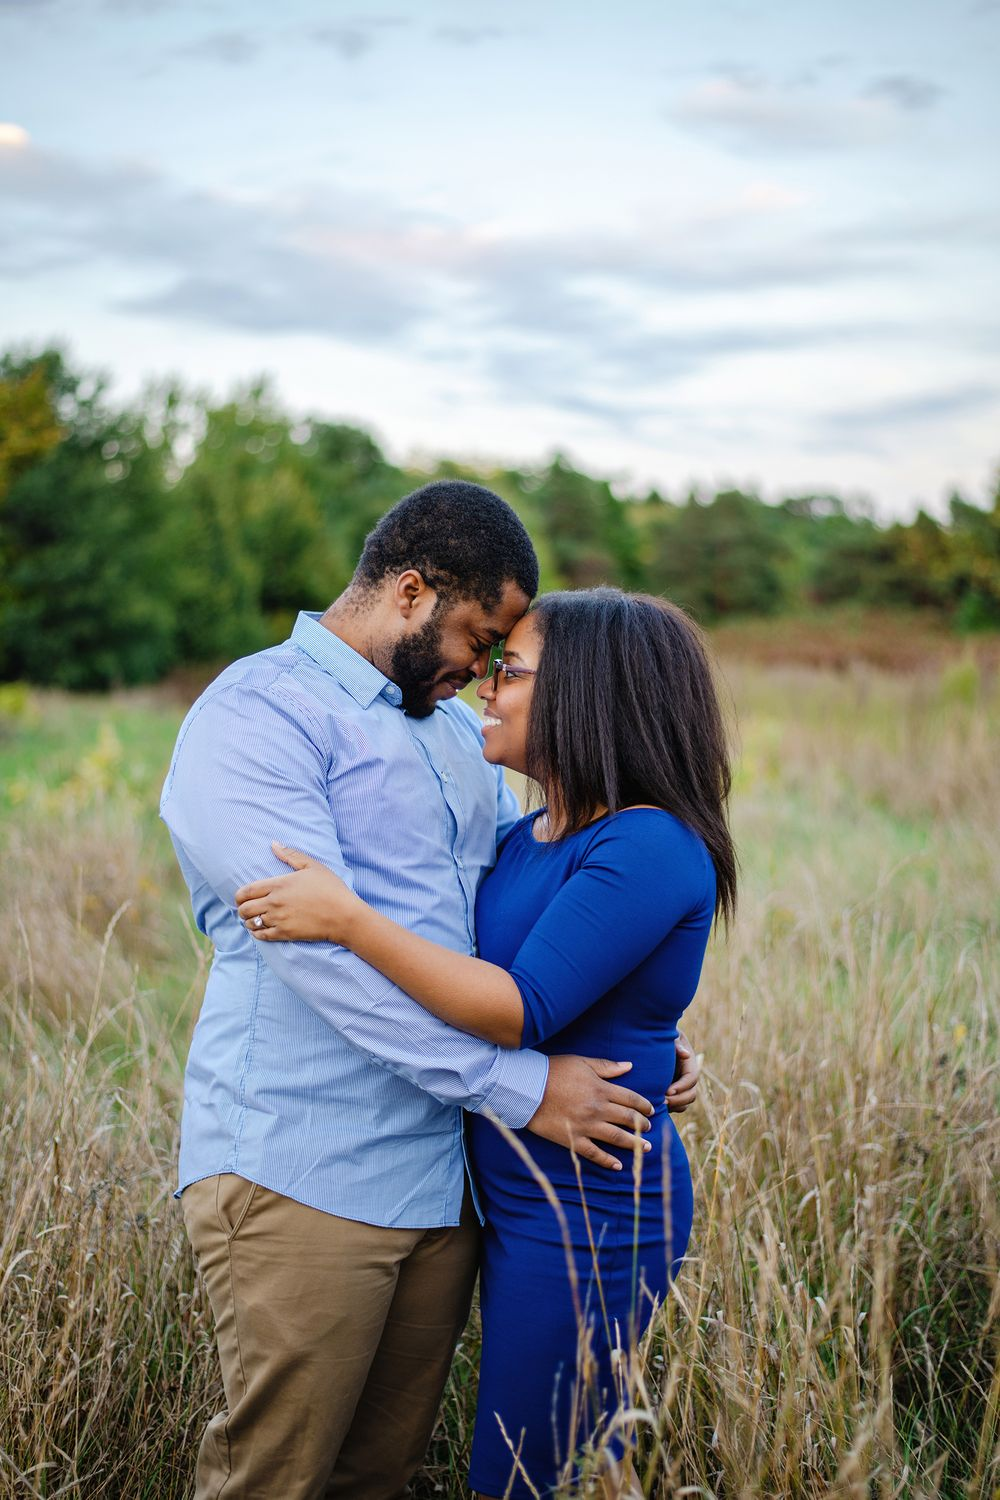 Ottawa Couples Photography - Couple touching foreheads in tall grass